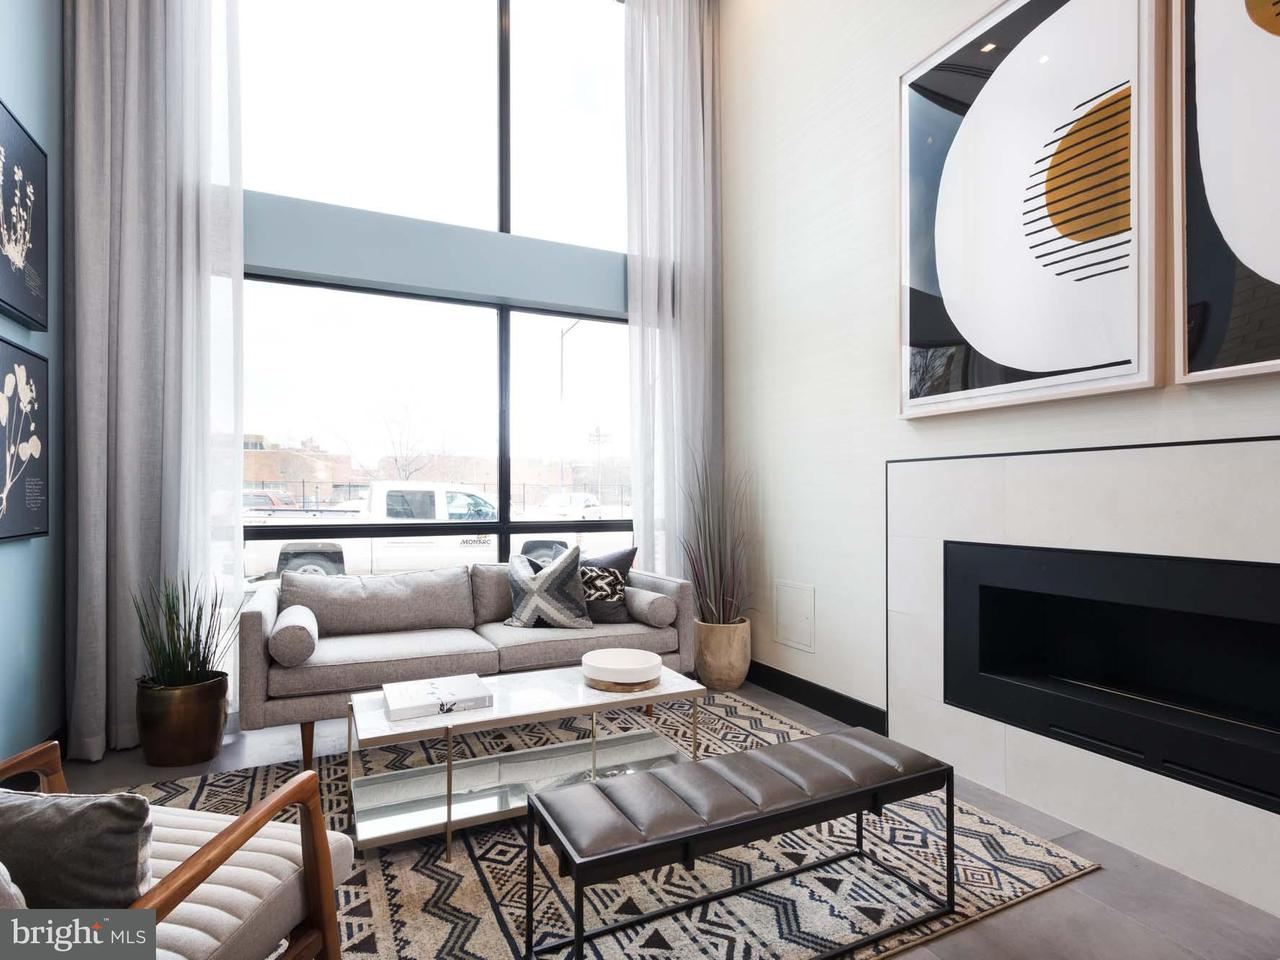 Condominium for Sale at 1628 11th St Nw #Th 107 1628 11th St Nw #Th 107 Washington, District Of Columbia 20001 United States